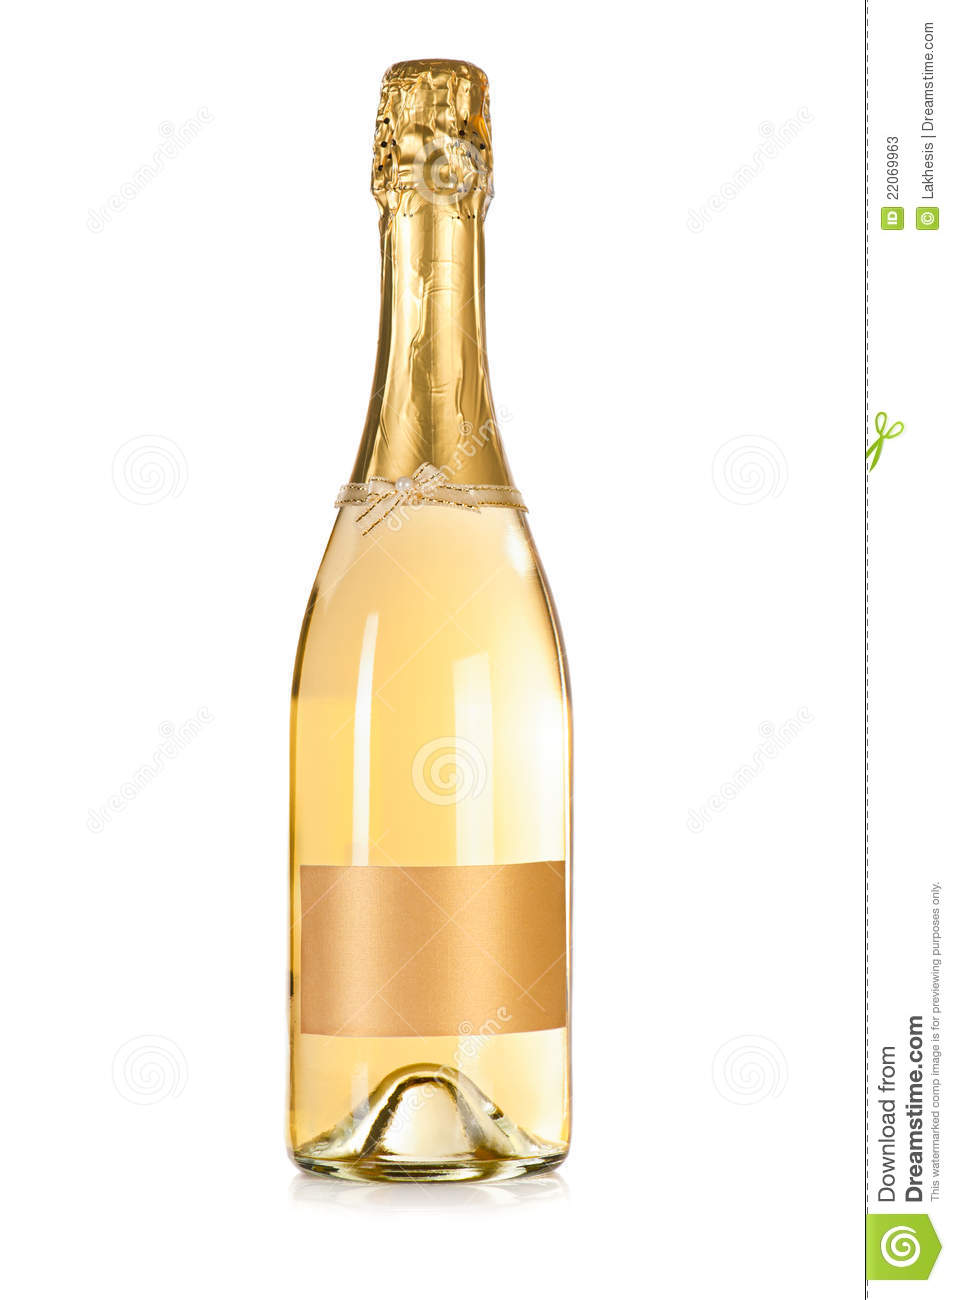 Bottle of champagne with label